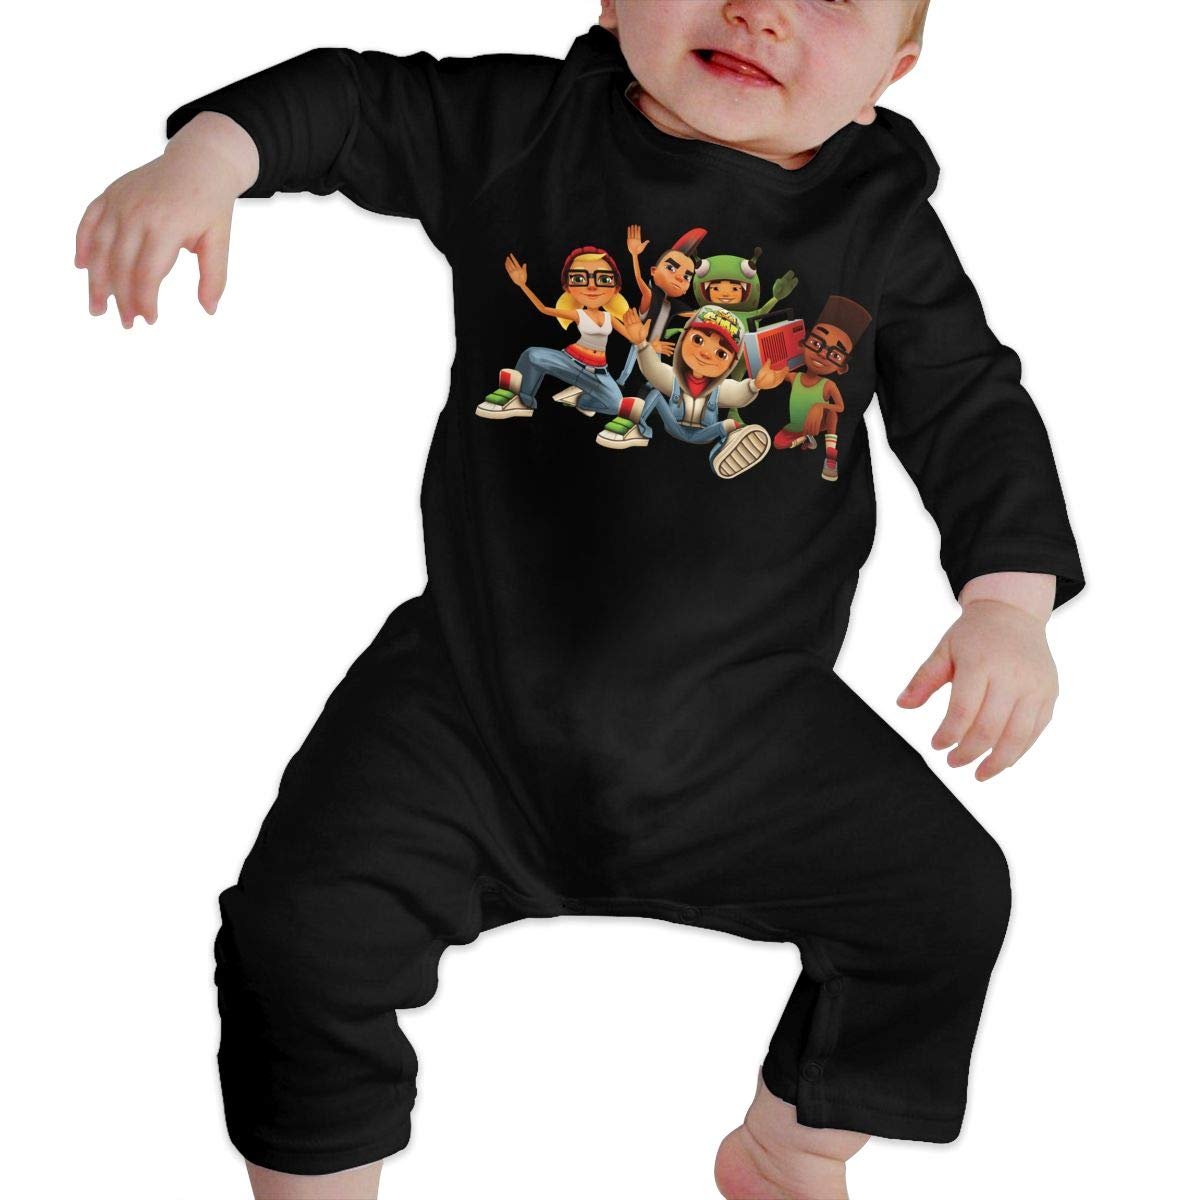 Gary Katte S-Y-B-O Newborn Jumpsuit Infant Baby Girls Long-Sleeve Bodysuit Playsuit Outfits Clothes Black